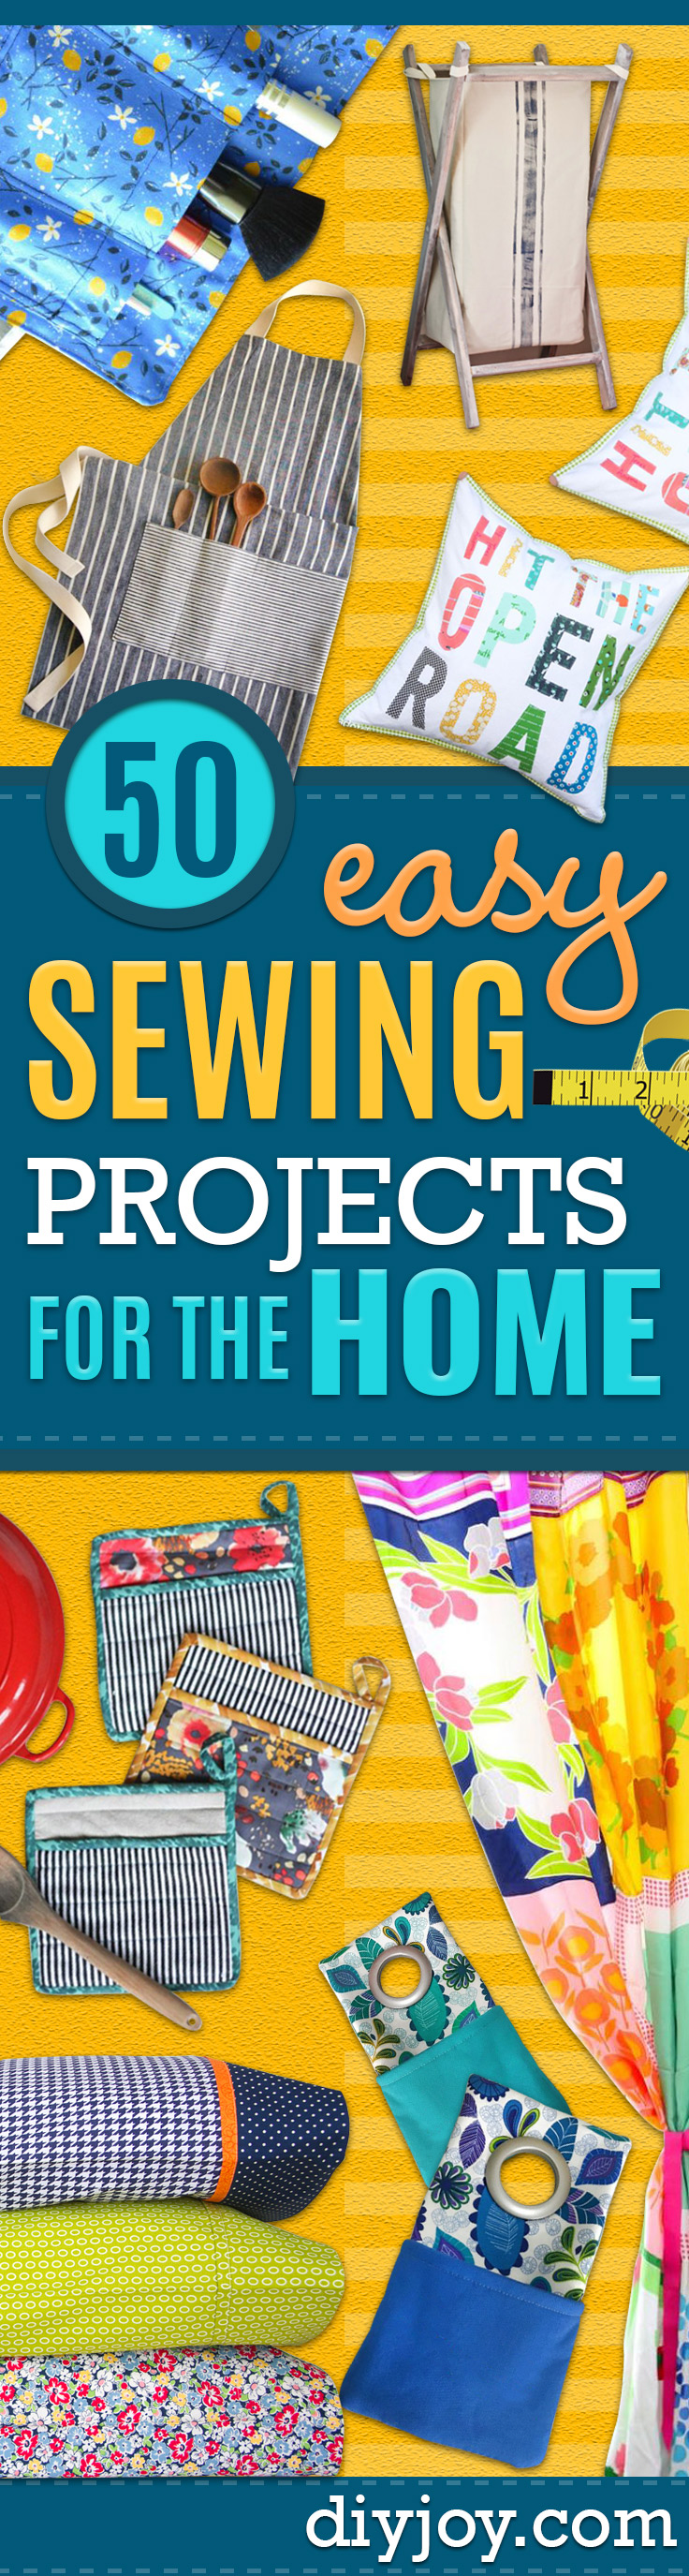 DIY Sewing Projects for the Home - Easy DIY Christmas Gifts and Ideas for Making Kitchen, Bedroom and Bathroom Decor - Free Step by Step Tutorial to Sew